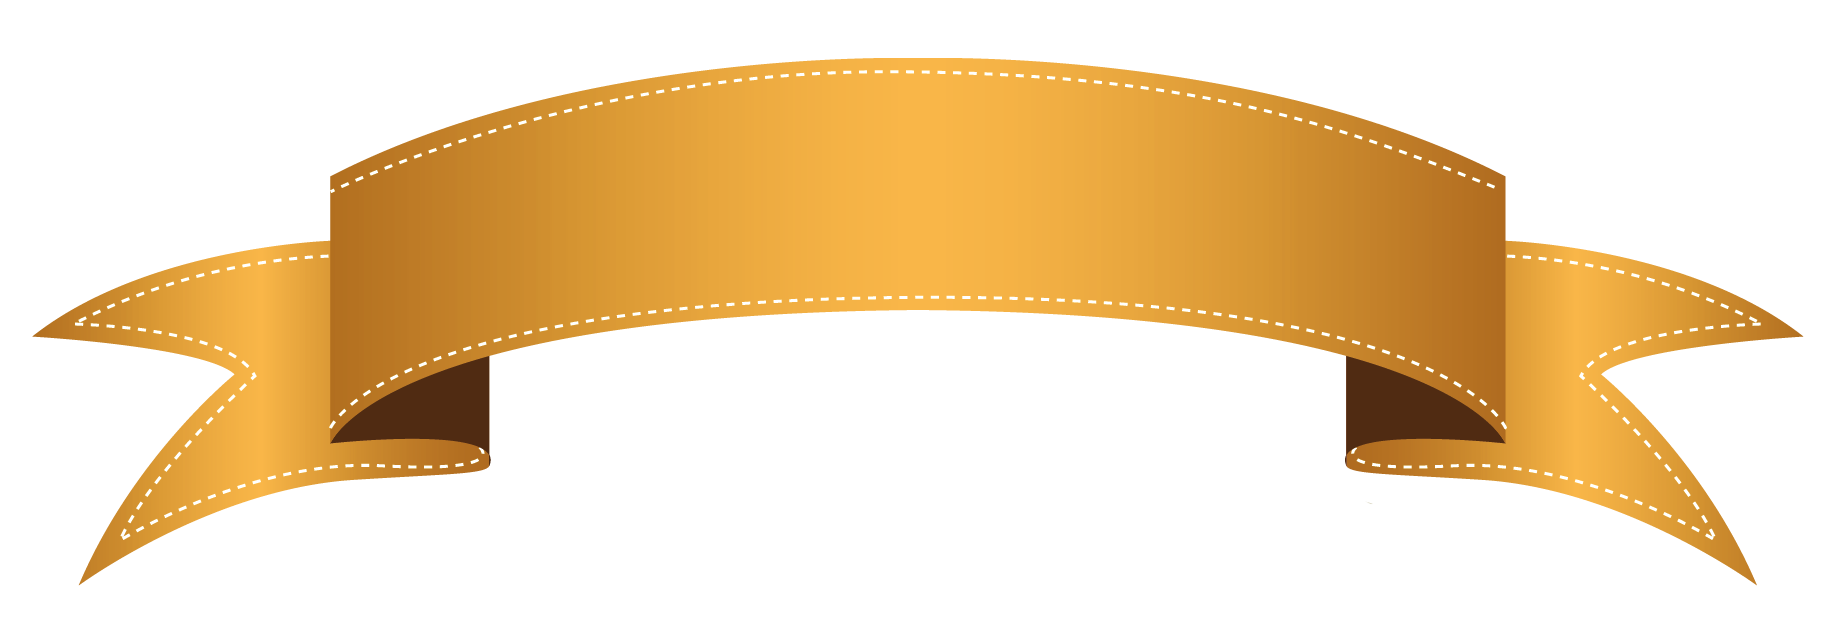 Ribbon banner clip art png. Orange transparent clipart paper